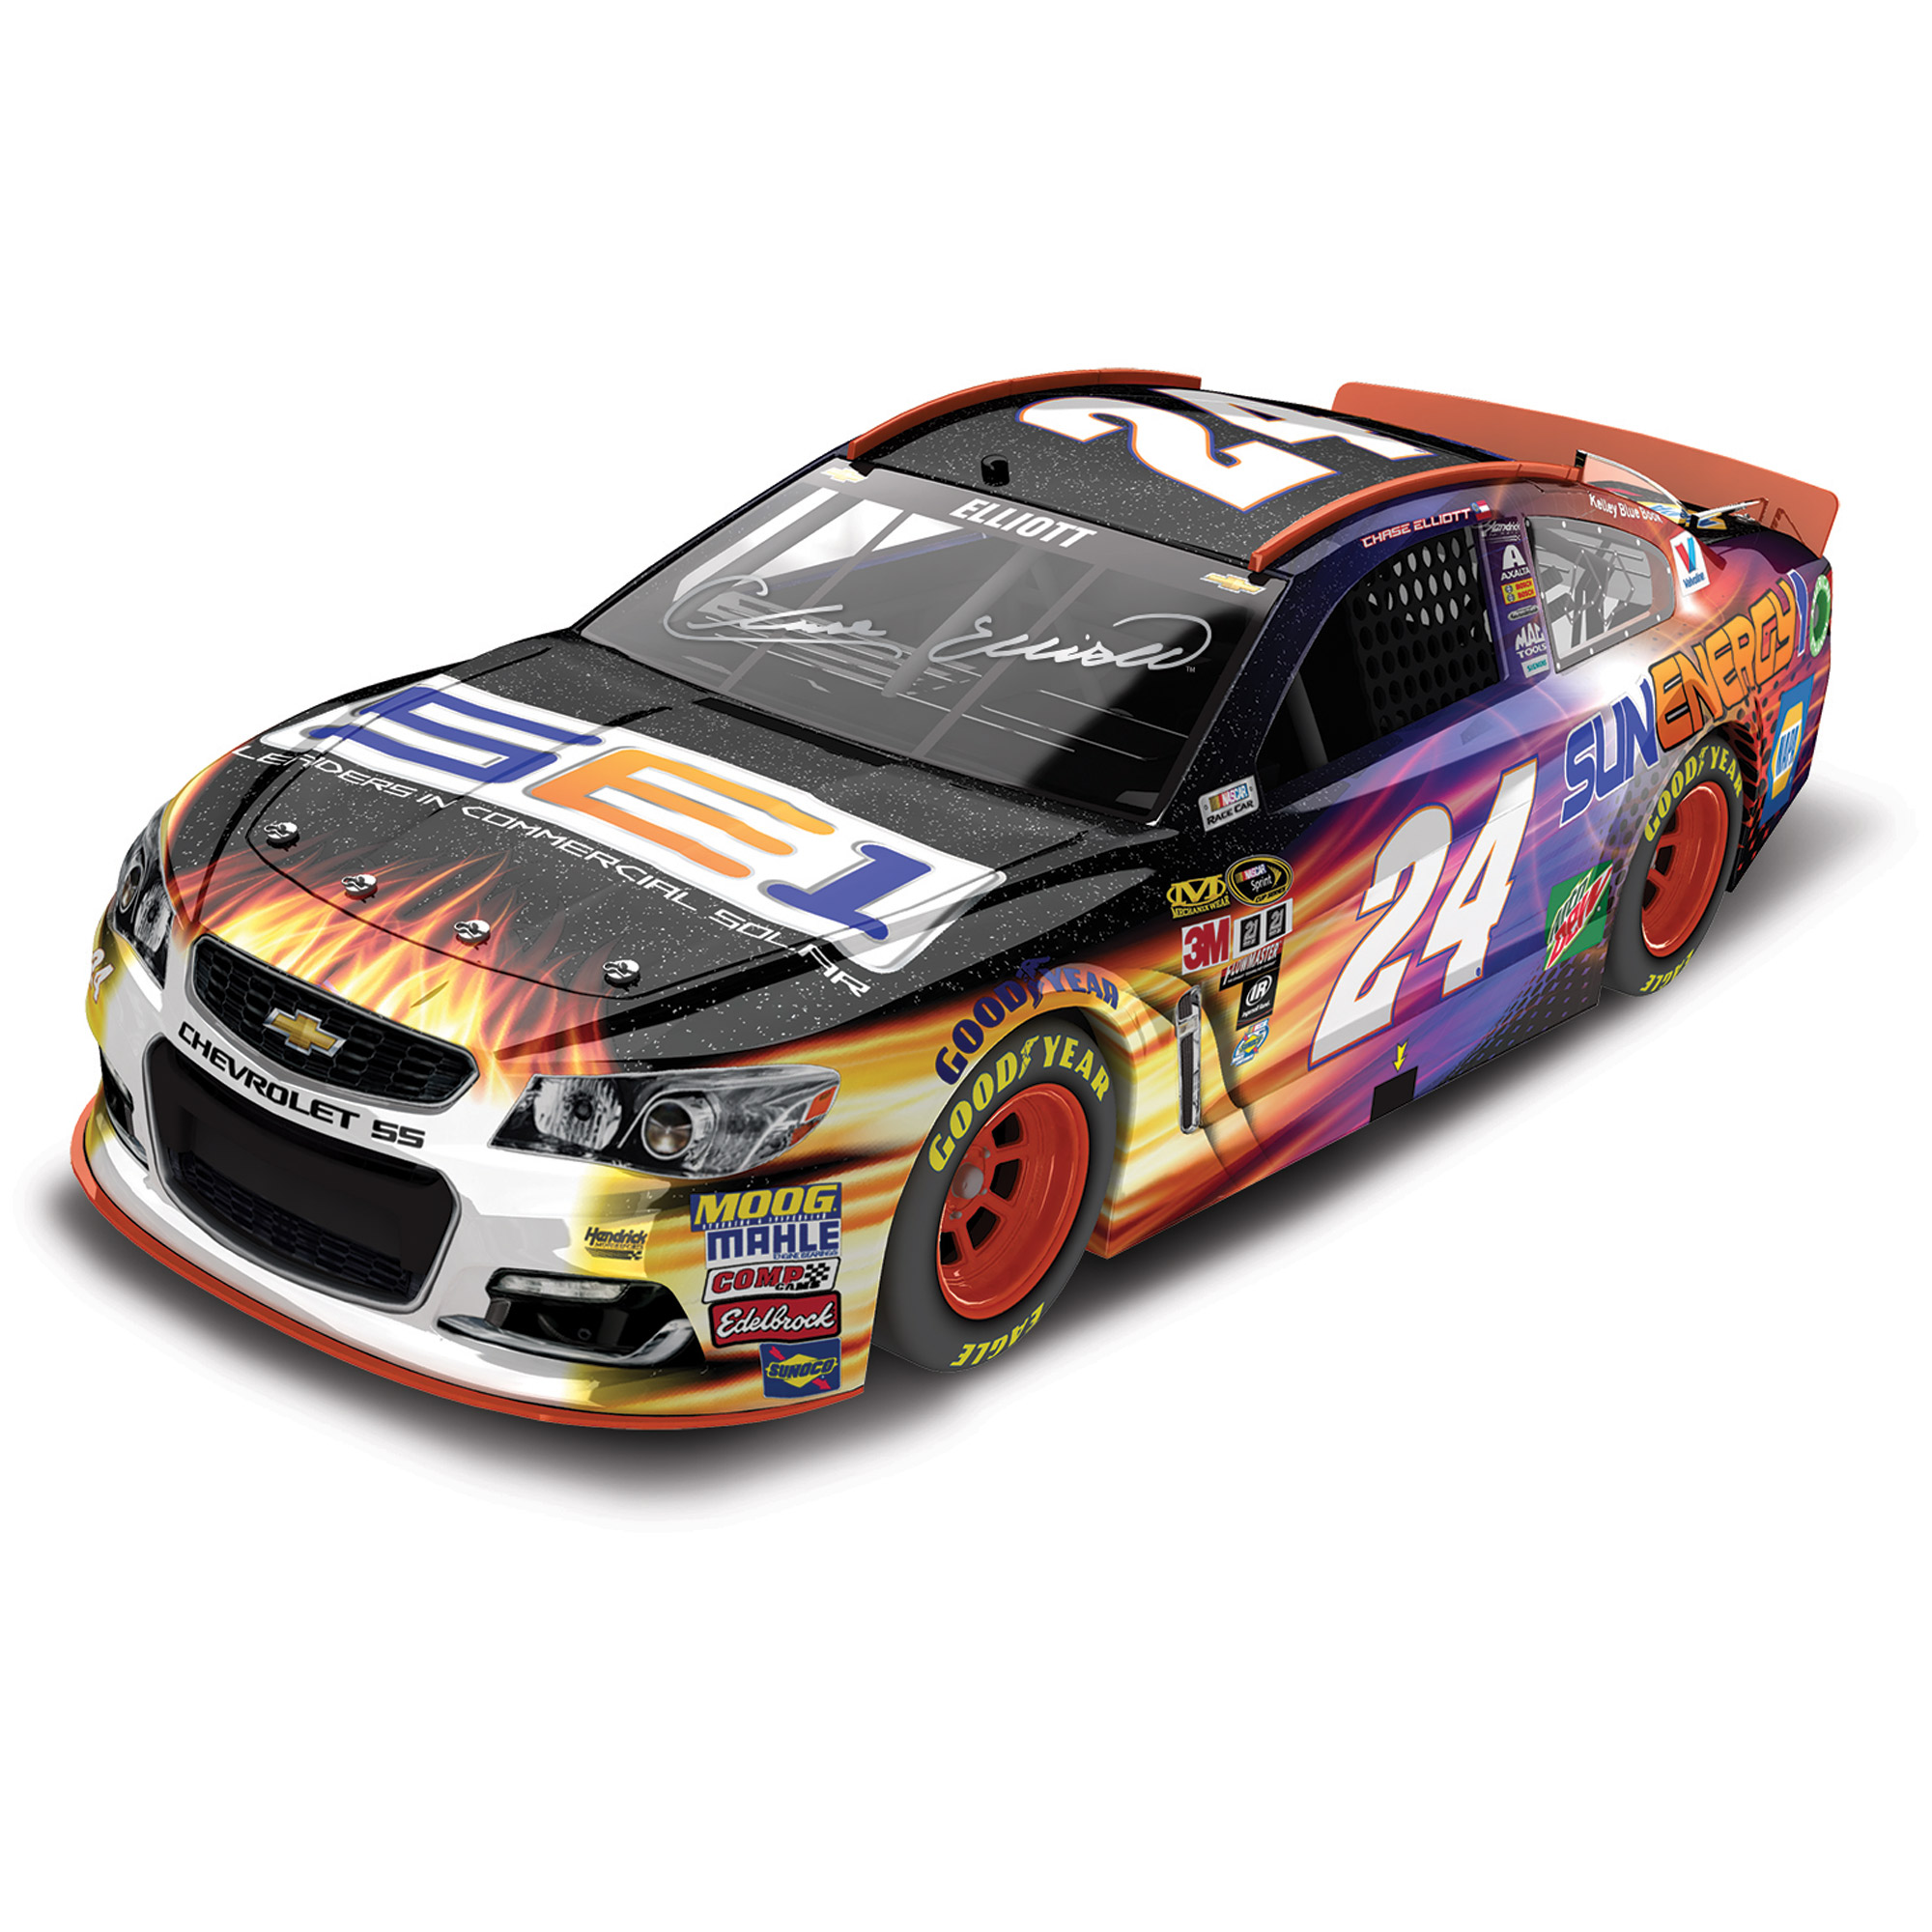 Action Racing Chase Elliott 2016 #24 SunEnergy1 1:24 Nascar Sprint Cup Series Autographed... by Lionel LLC